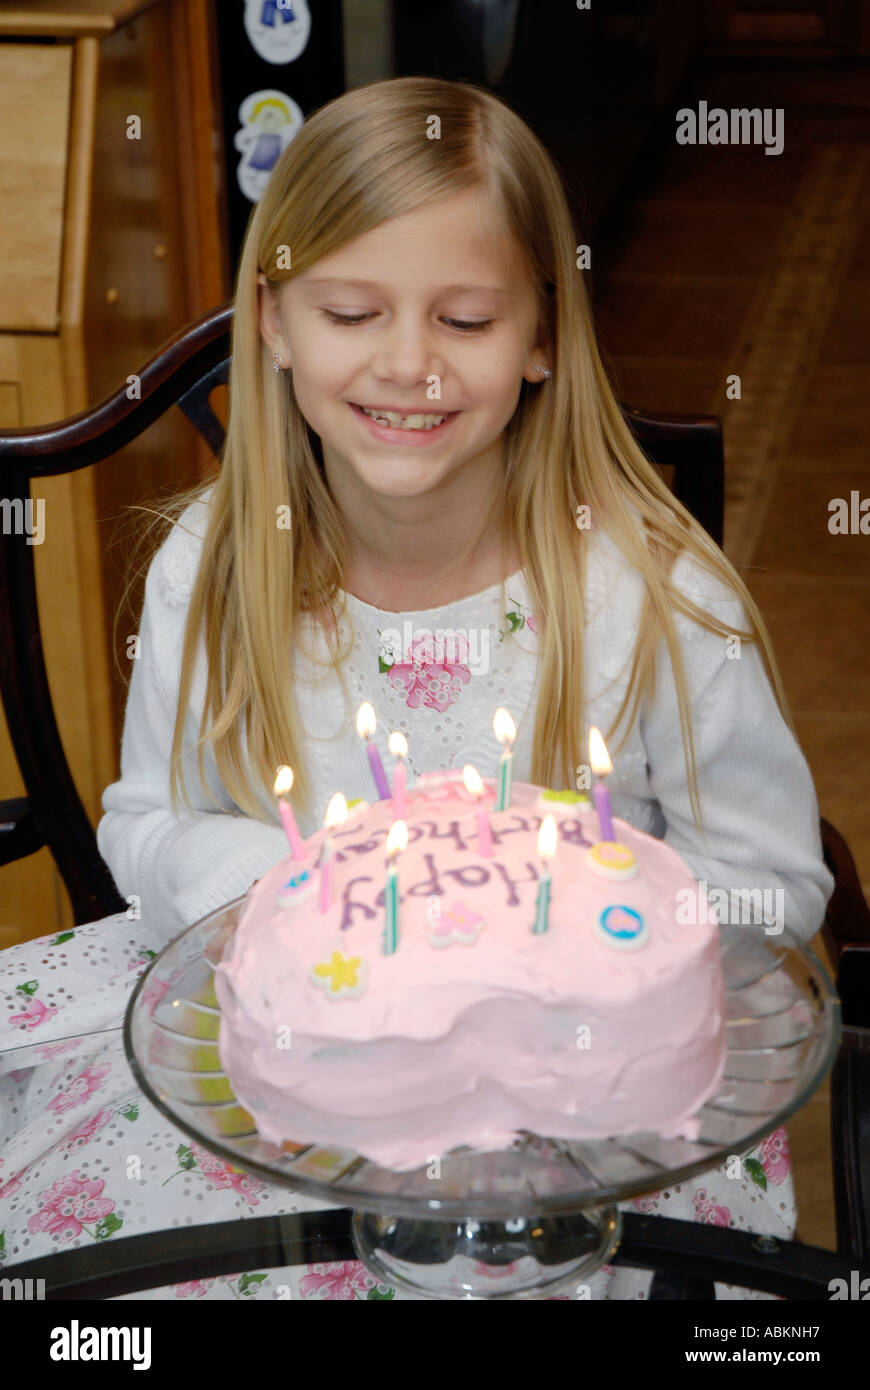 8 Year Old Girl Celebrates Her Birthday With A Cake With